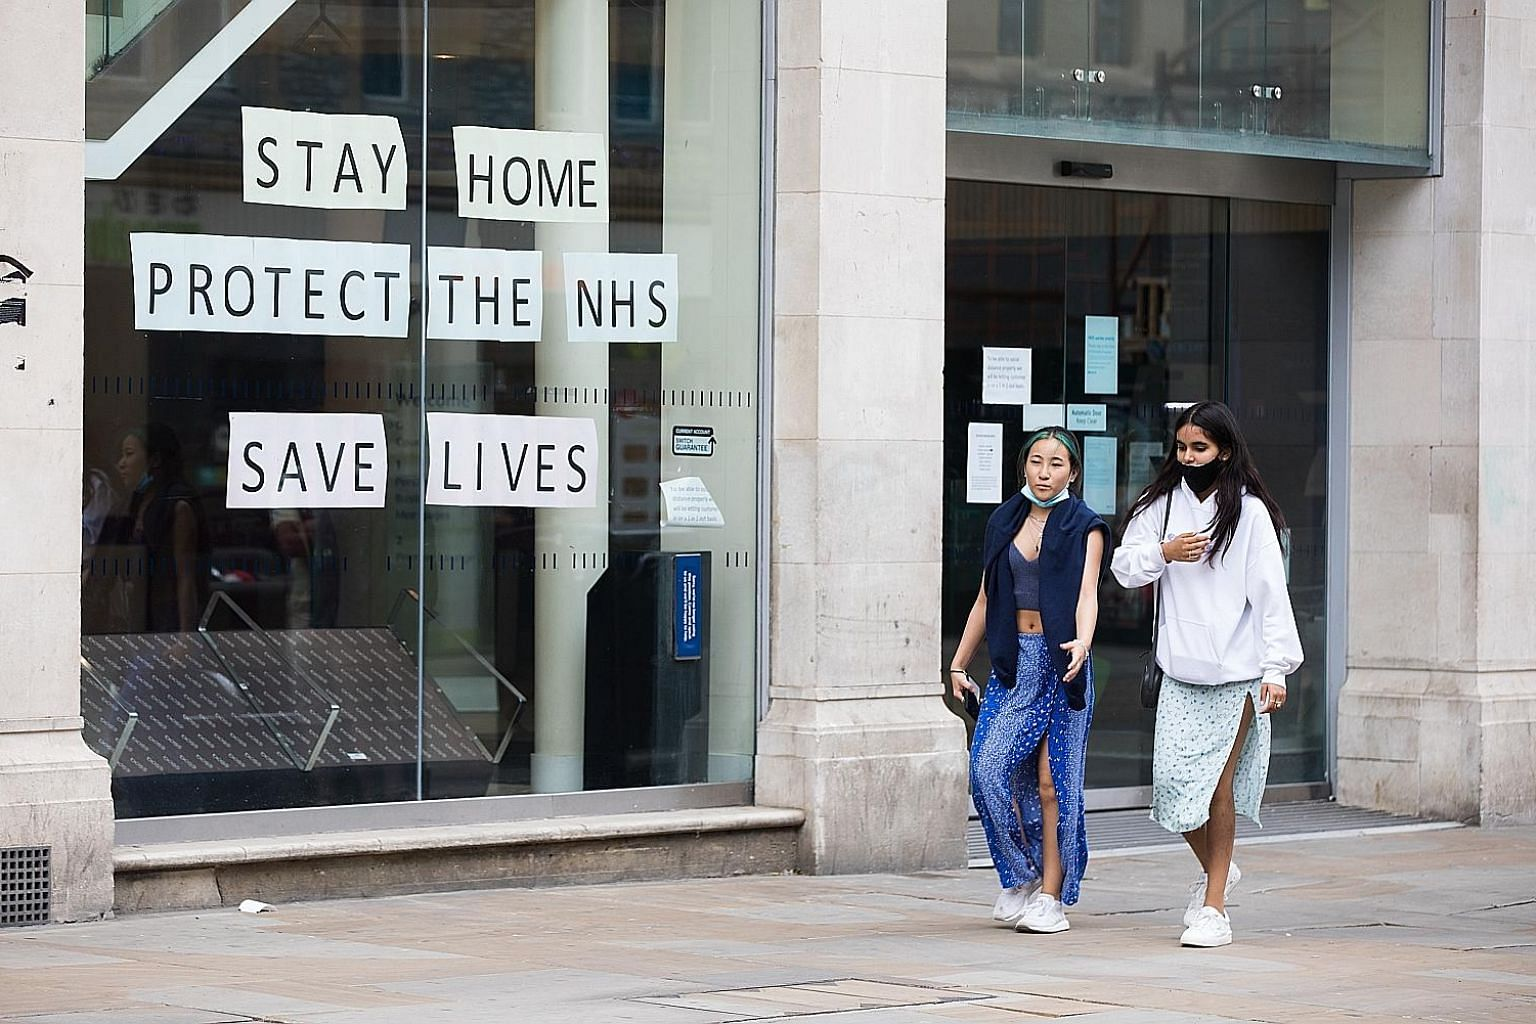 """People walking past a Barclays branch in Oxford, England, on Wednesday. At earlier stages of the outbreak, there was a strong case for a blunt, one-size-fits-all message: """"Stay at home, save lives."""" But preventing a second wave as countries reopen ca"""